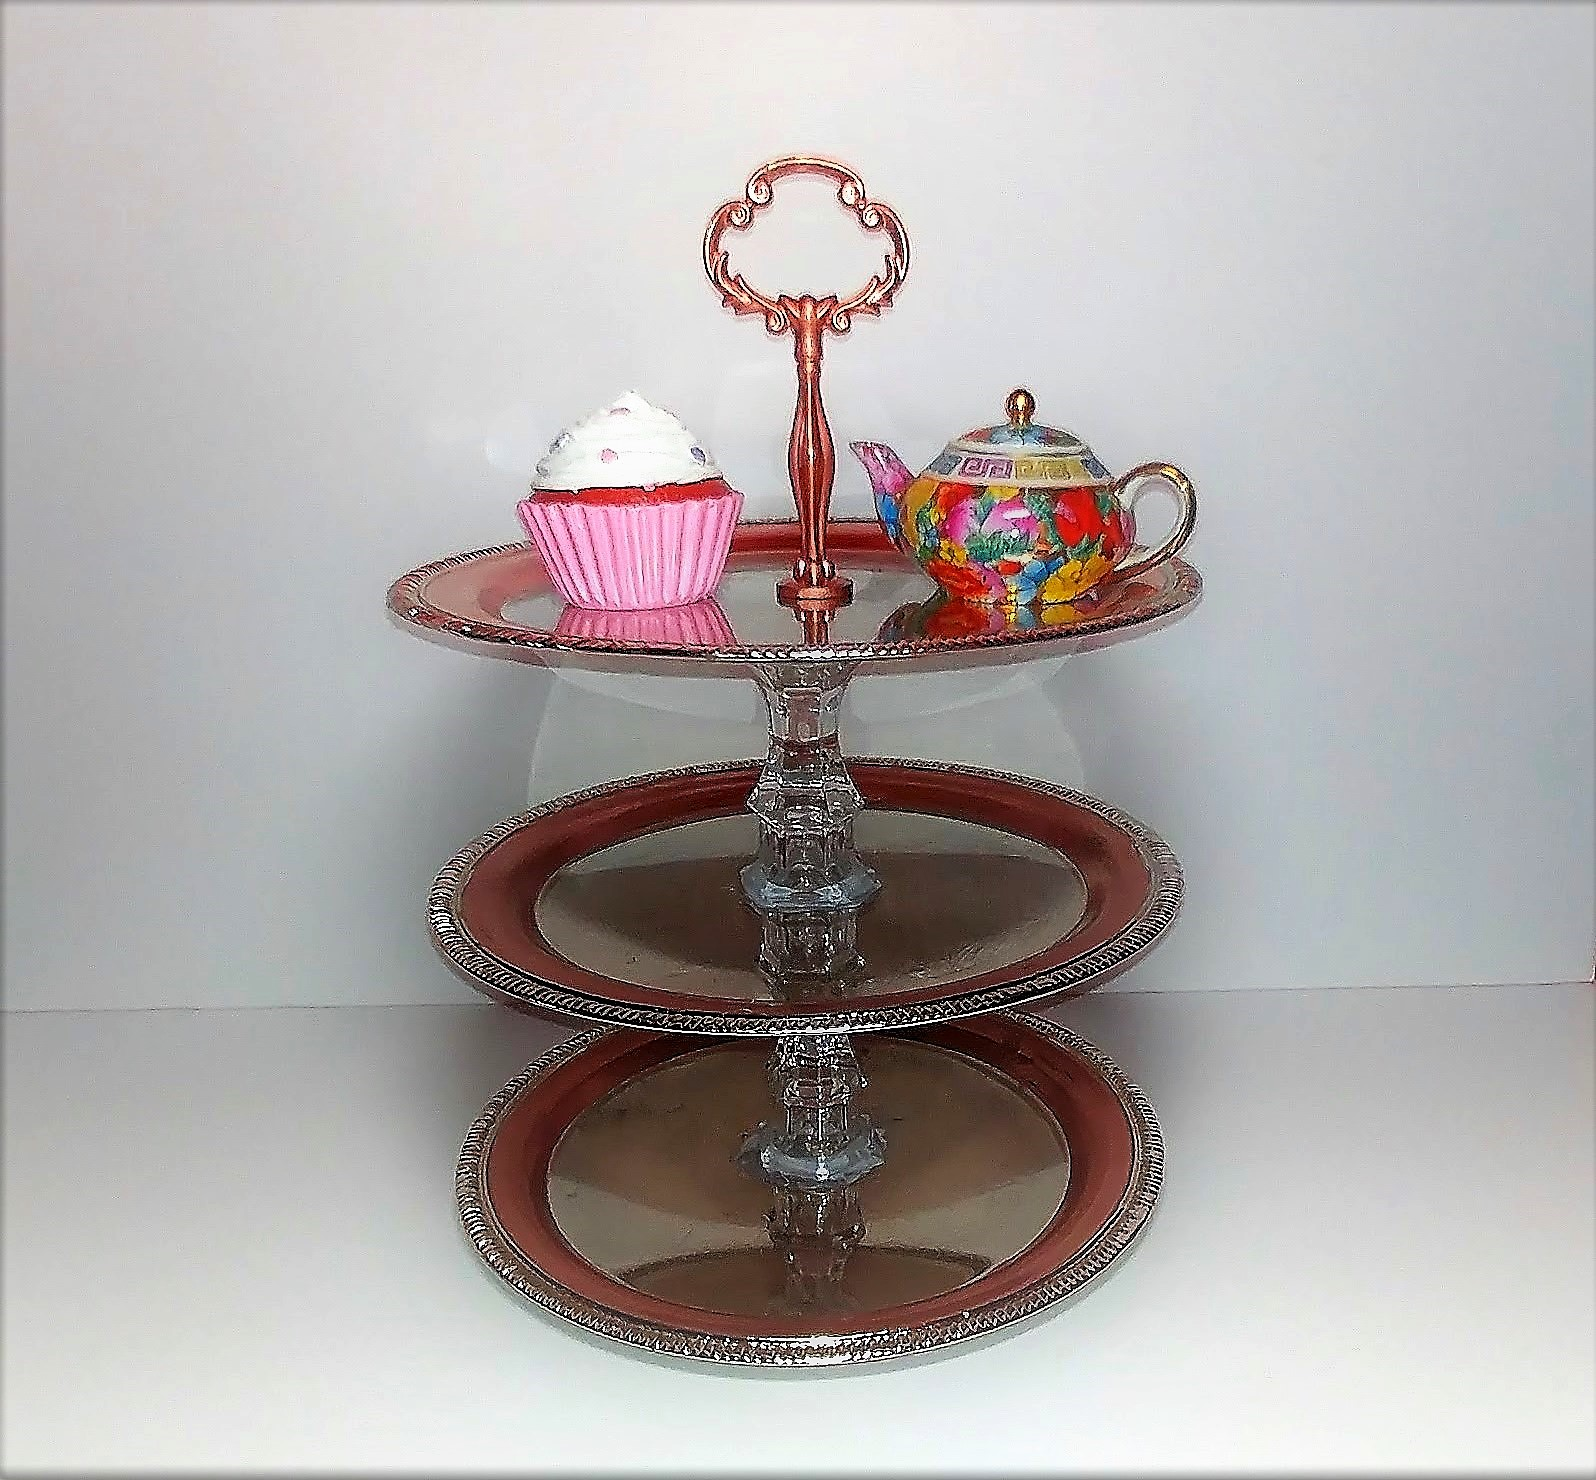 Three Tier Cake And Cupcake Stand